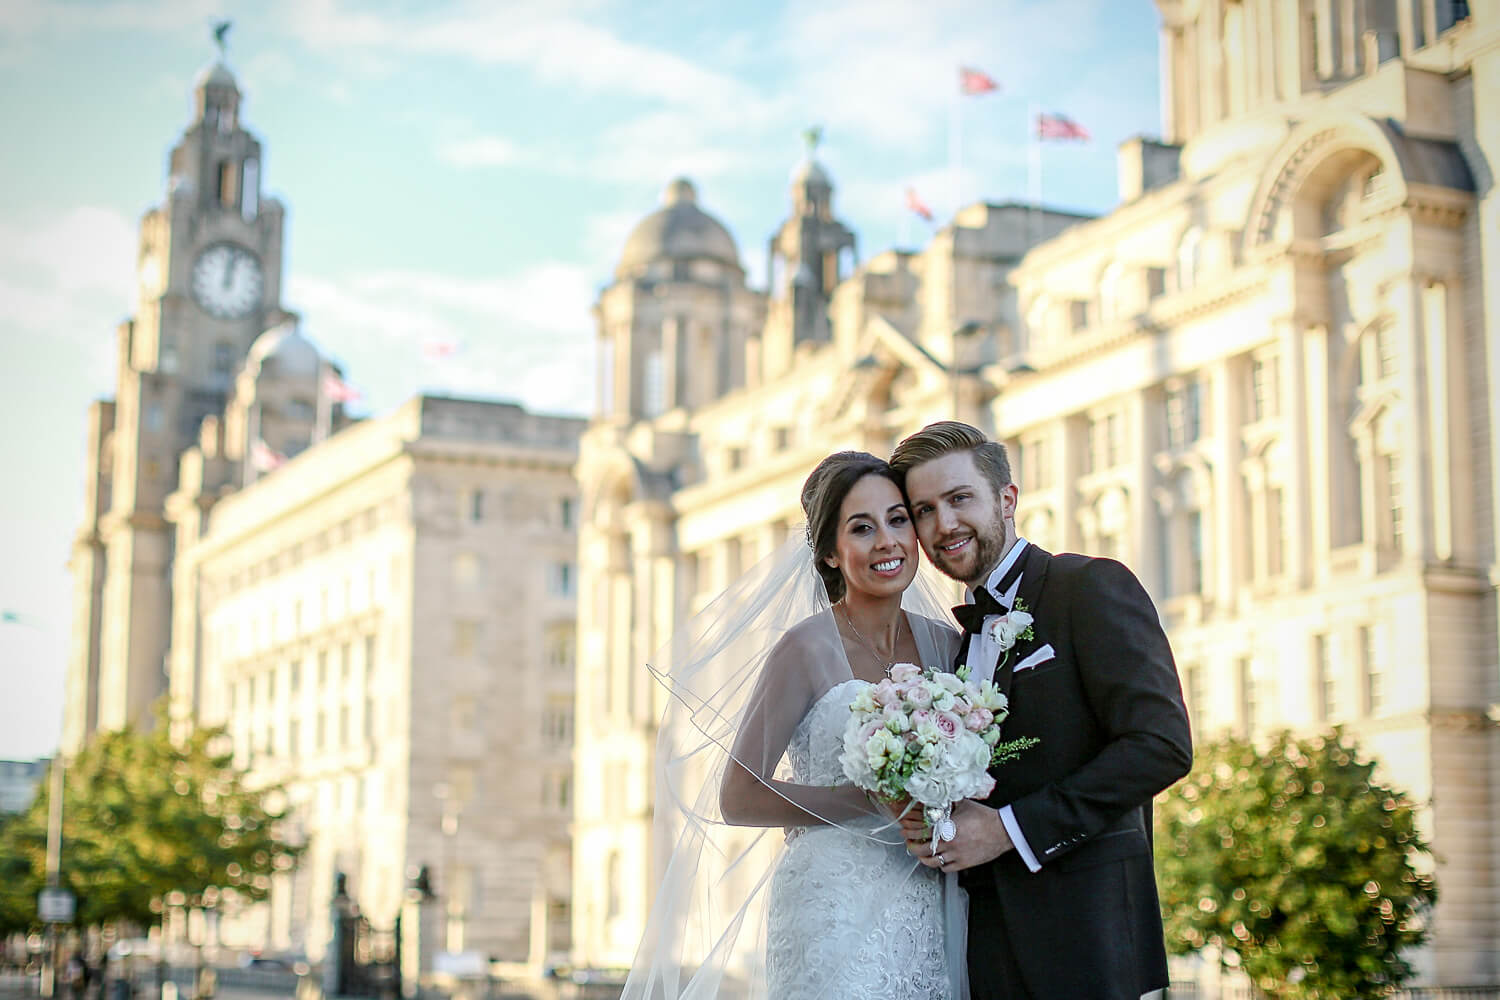 Cool portrait of bride and groom in front of Liver Building liverpool water front